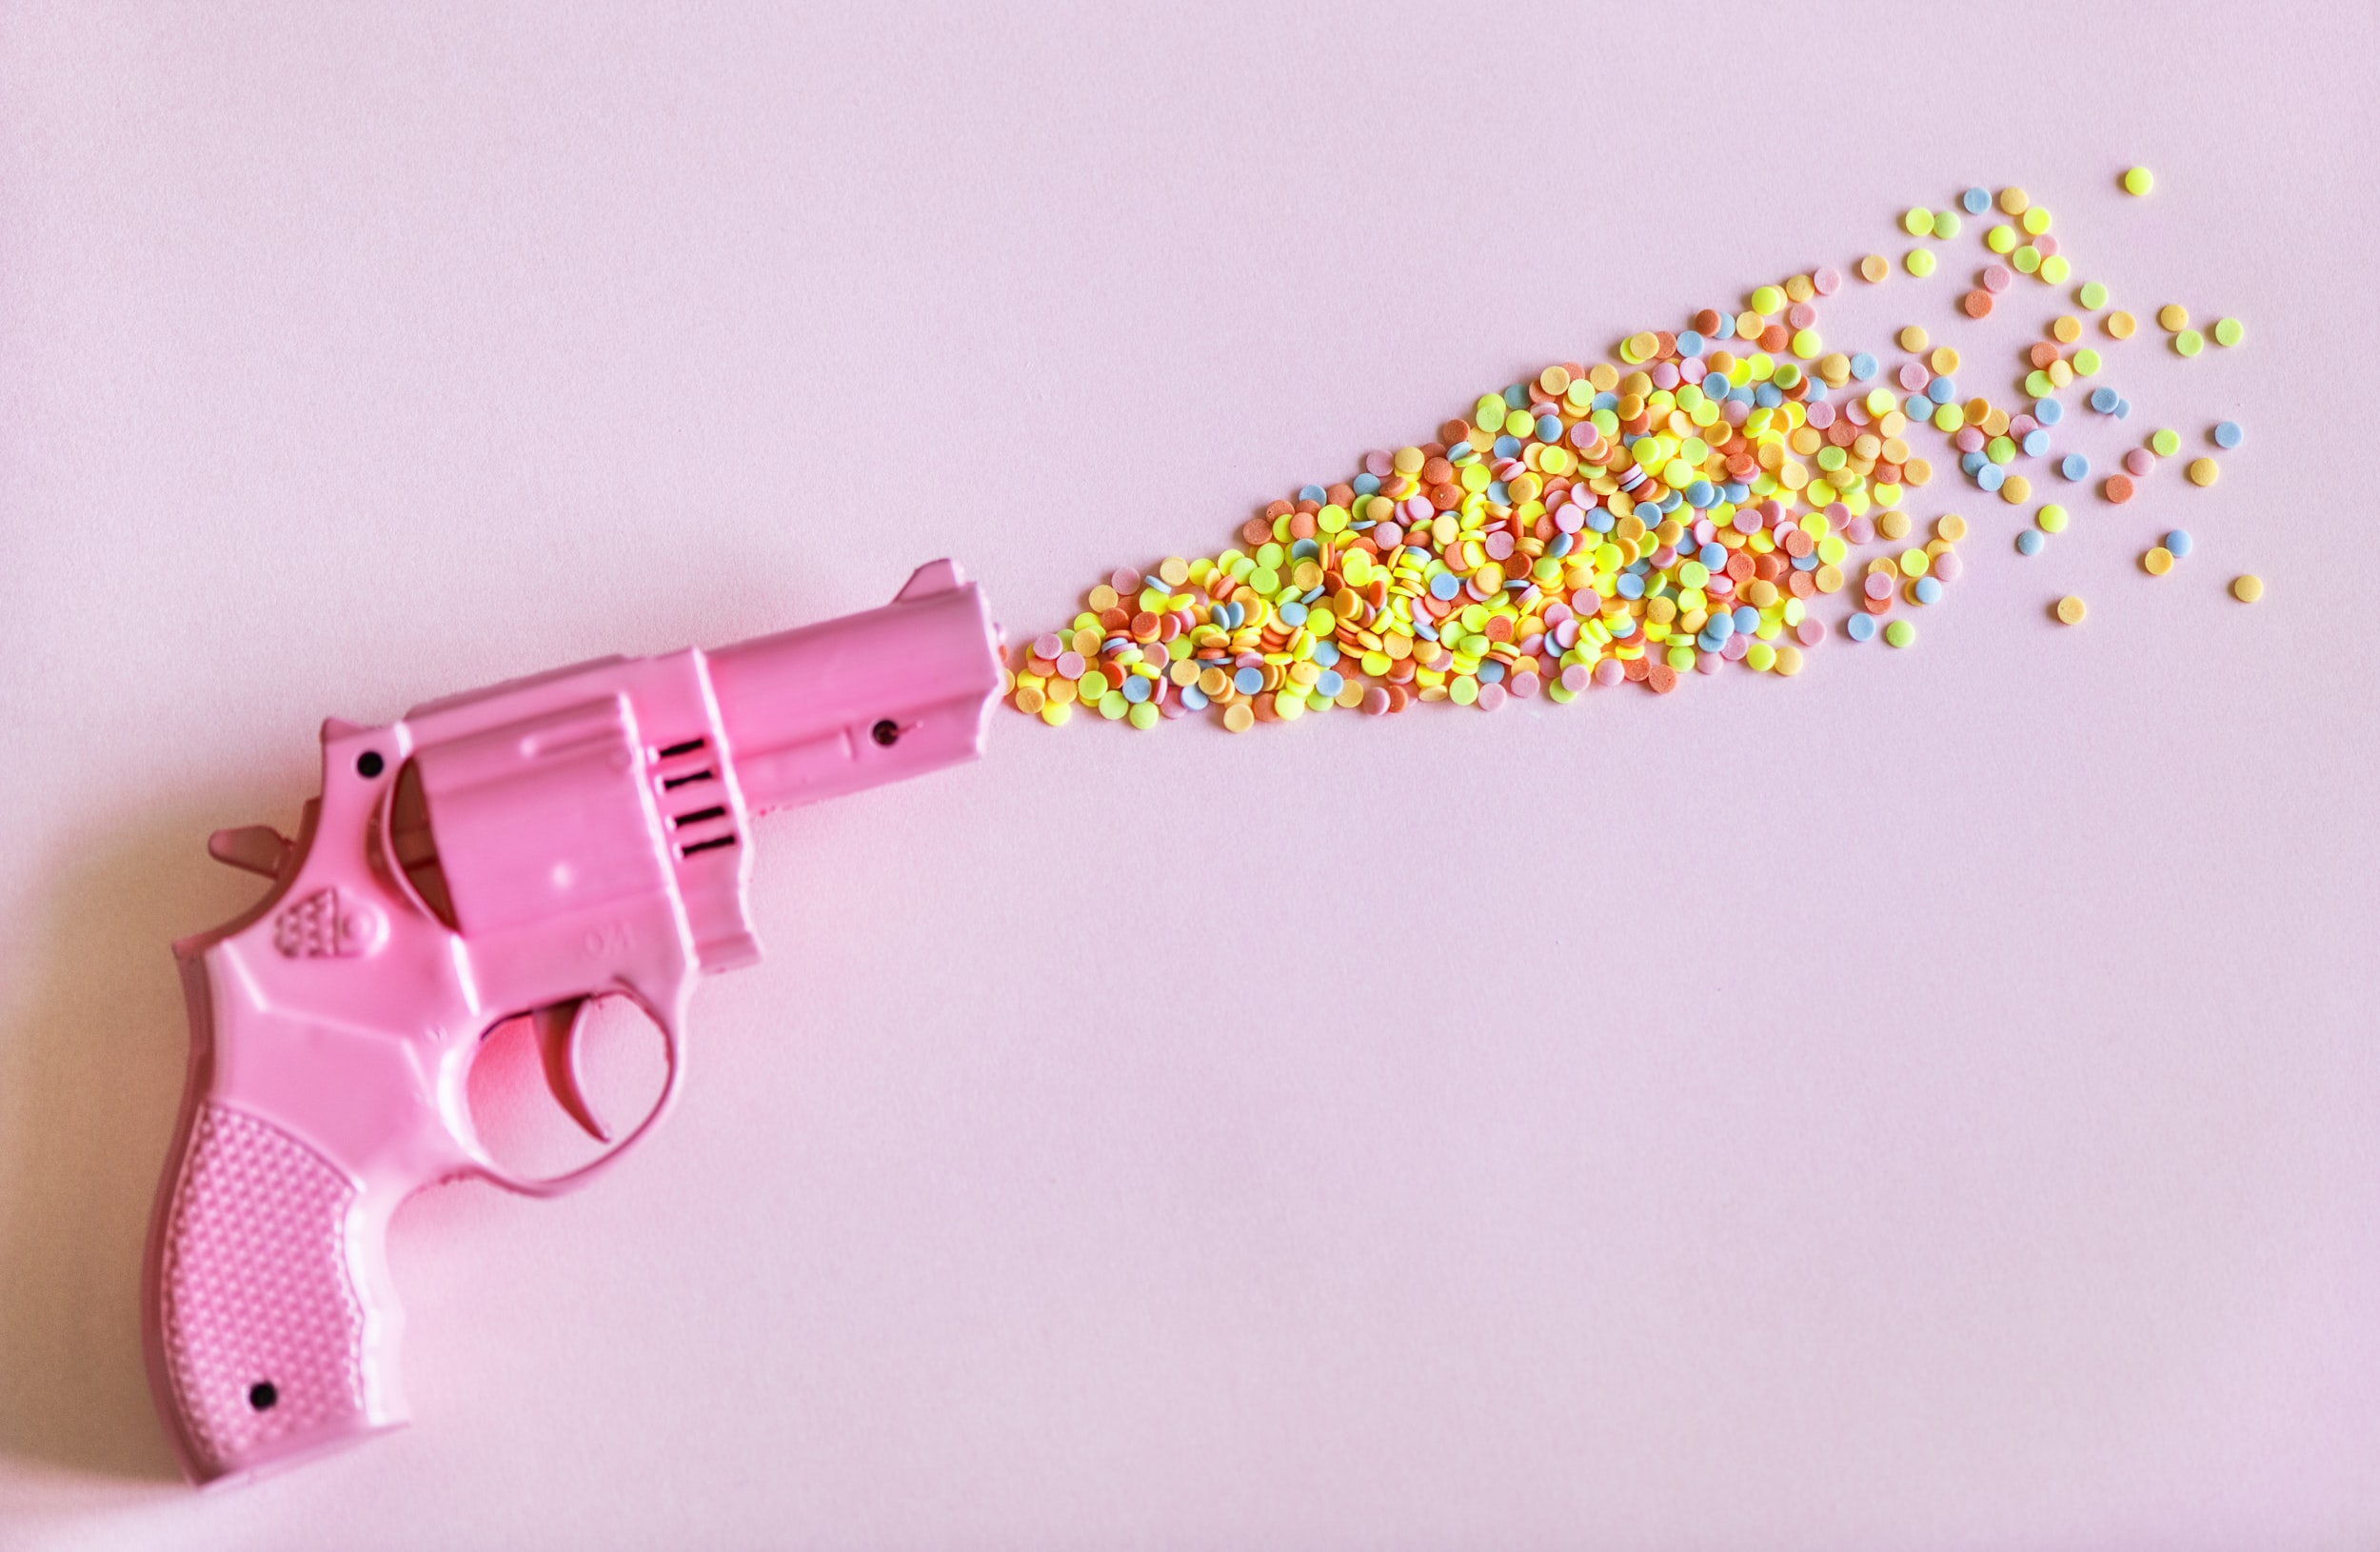 pink revolver pistol with multicolored blast photography